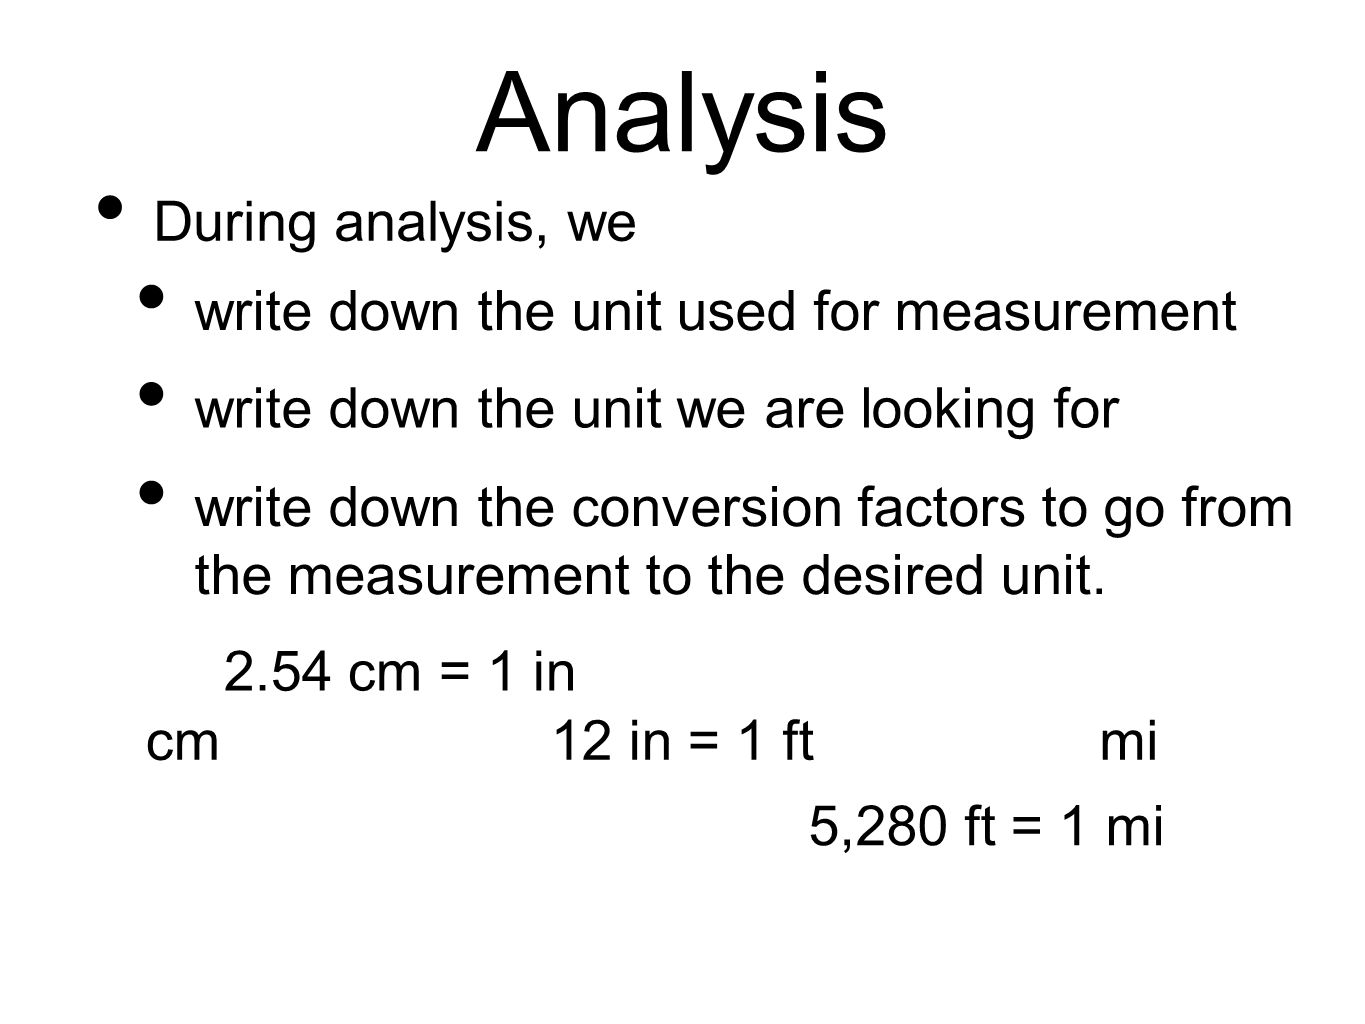 Applying Significant Figures